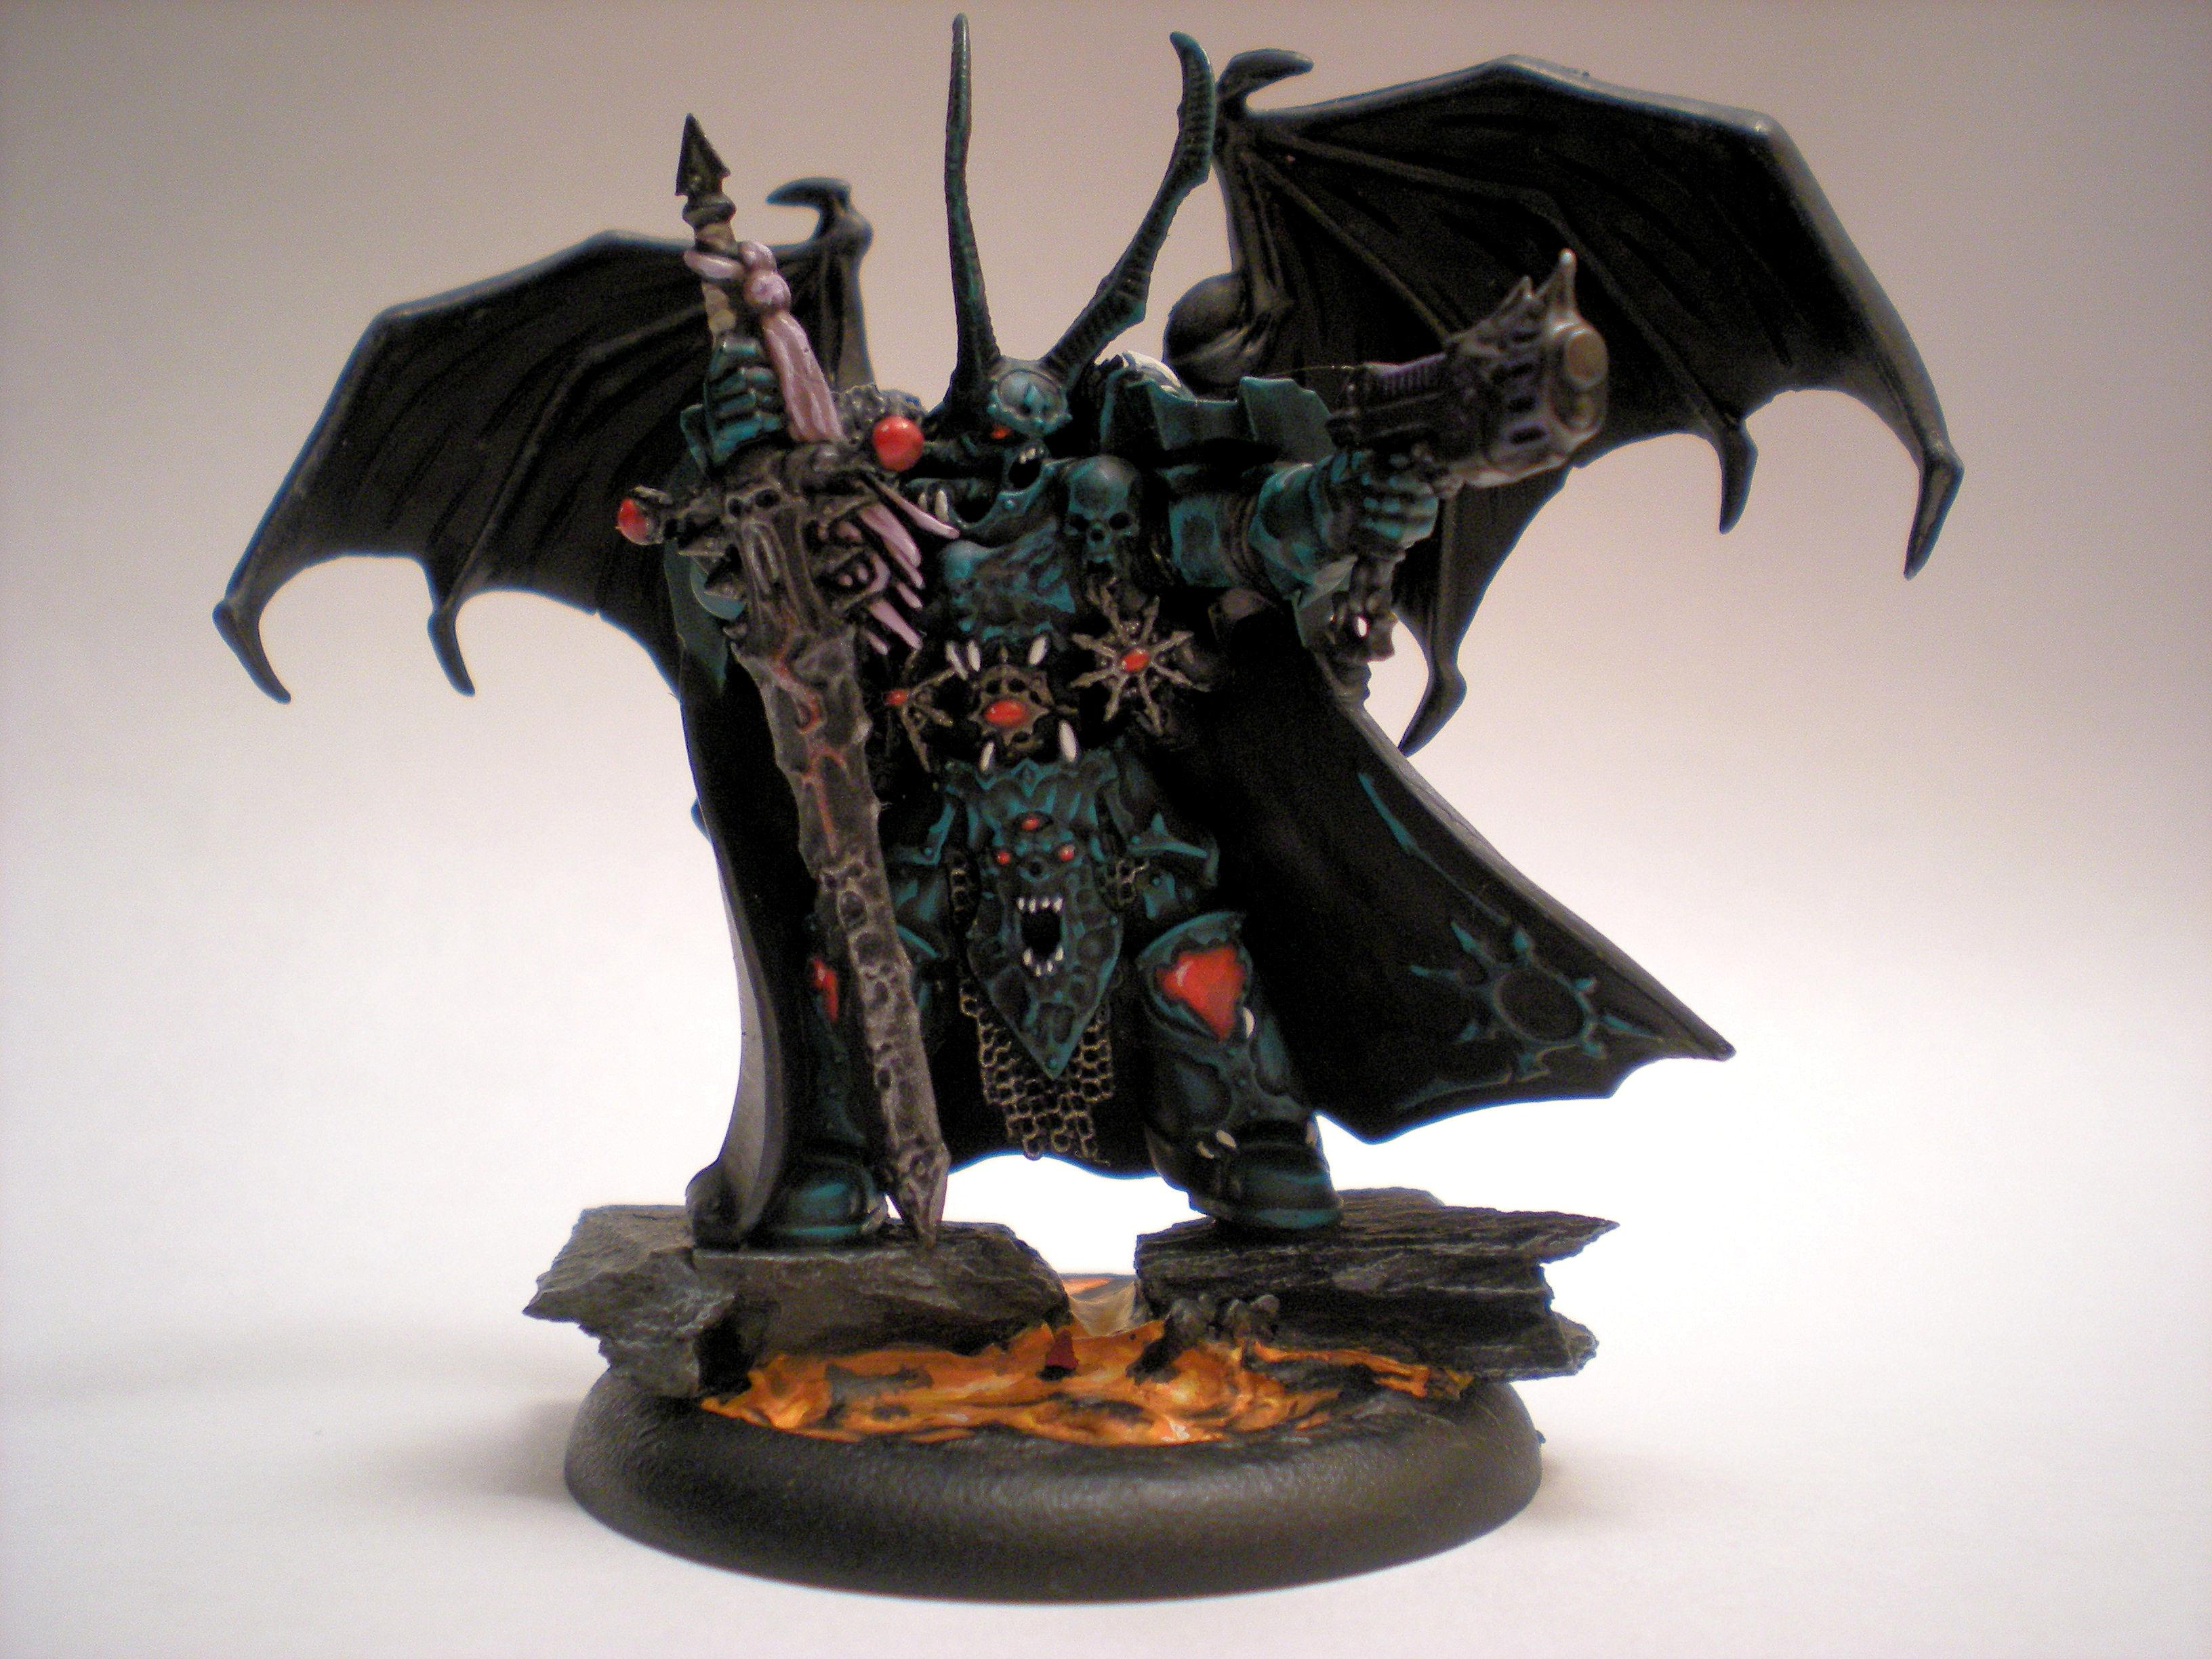 Base, Chaos, Flying, Green, Lava, Lord, Slaanesh, Sword, Turquoise, Warhammer 40,000, Winged